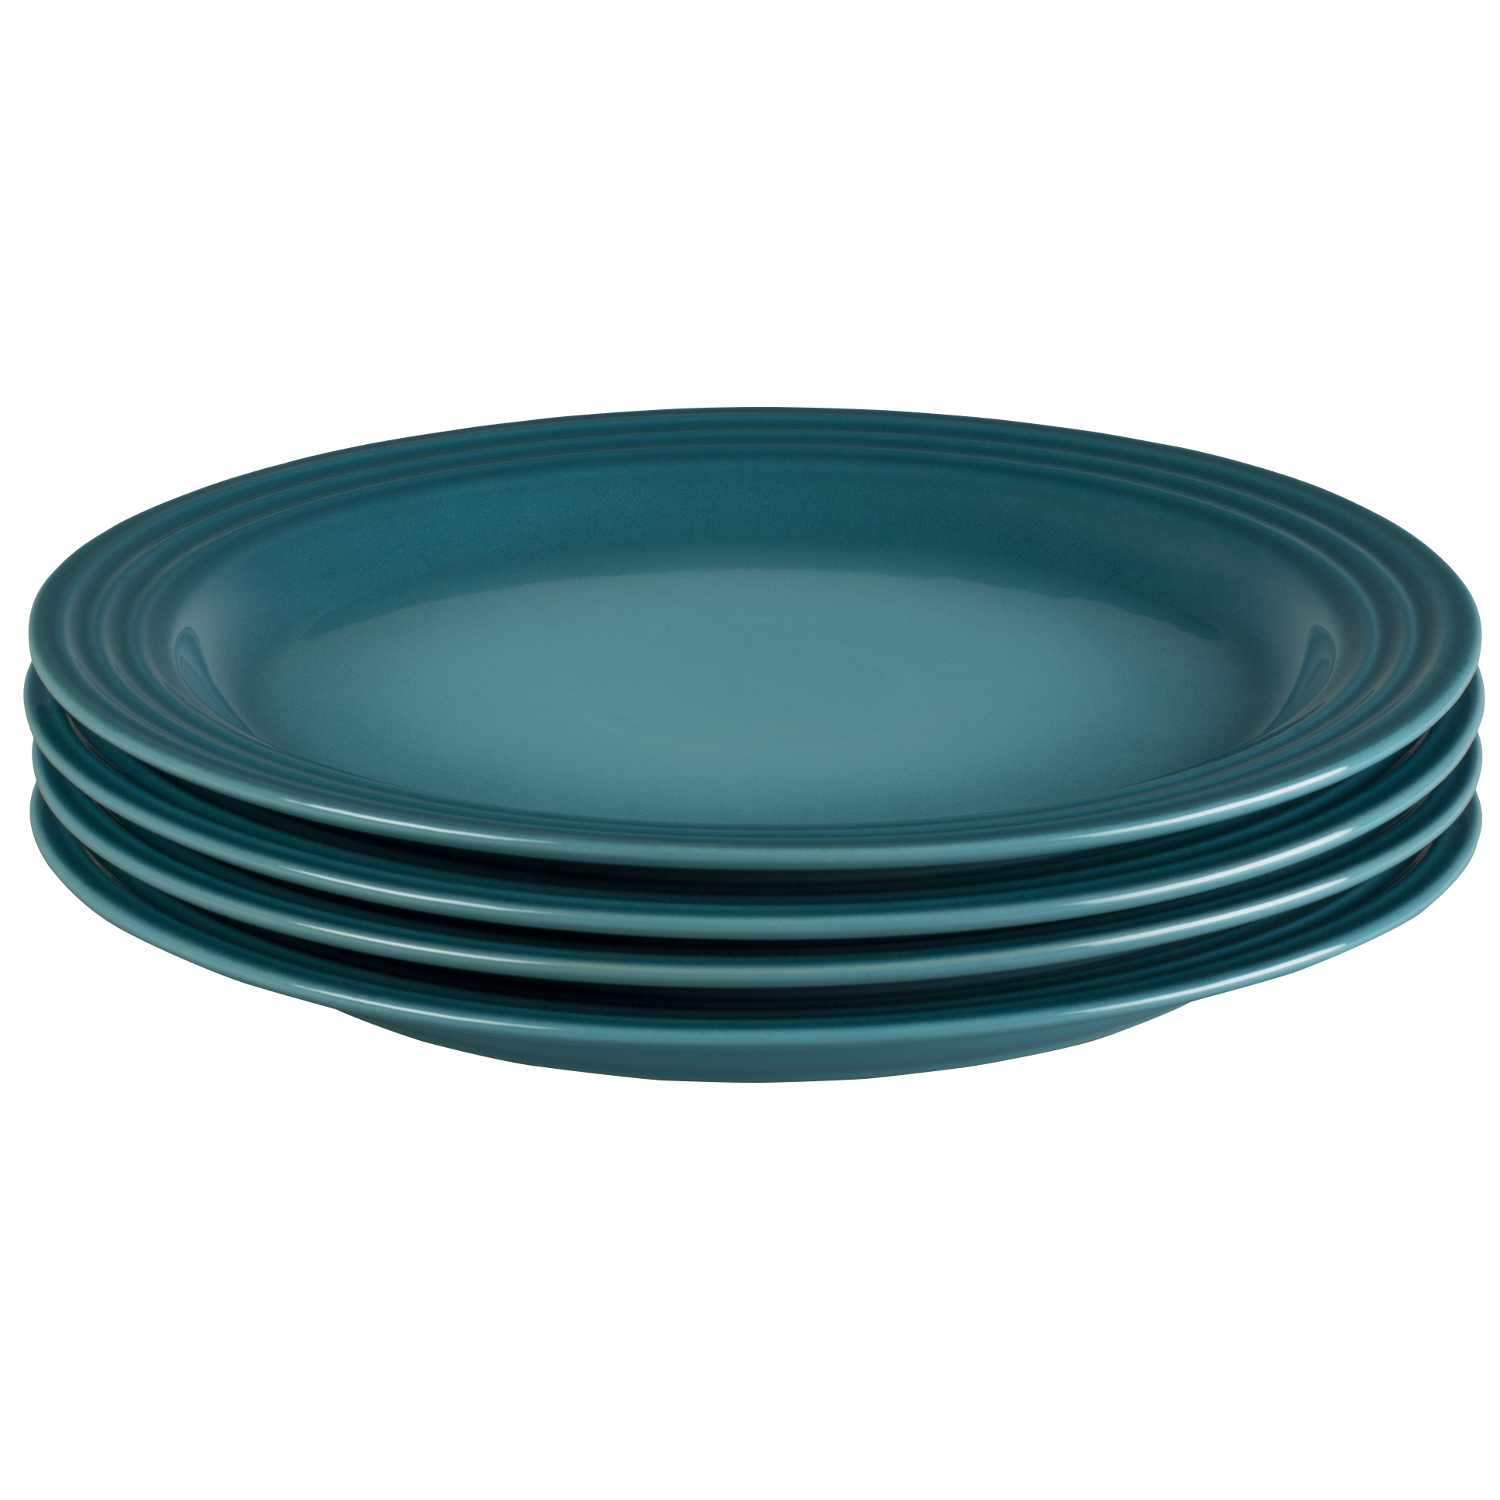 Le Creuset Caribbean Stoneware 11.25 Inch Dinner Plate, Set of 4